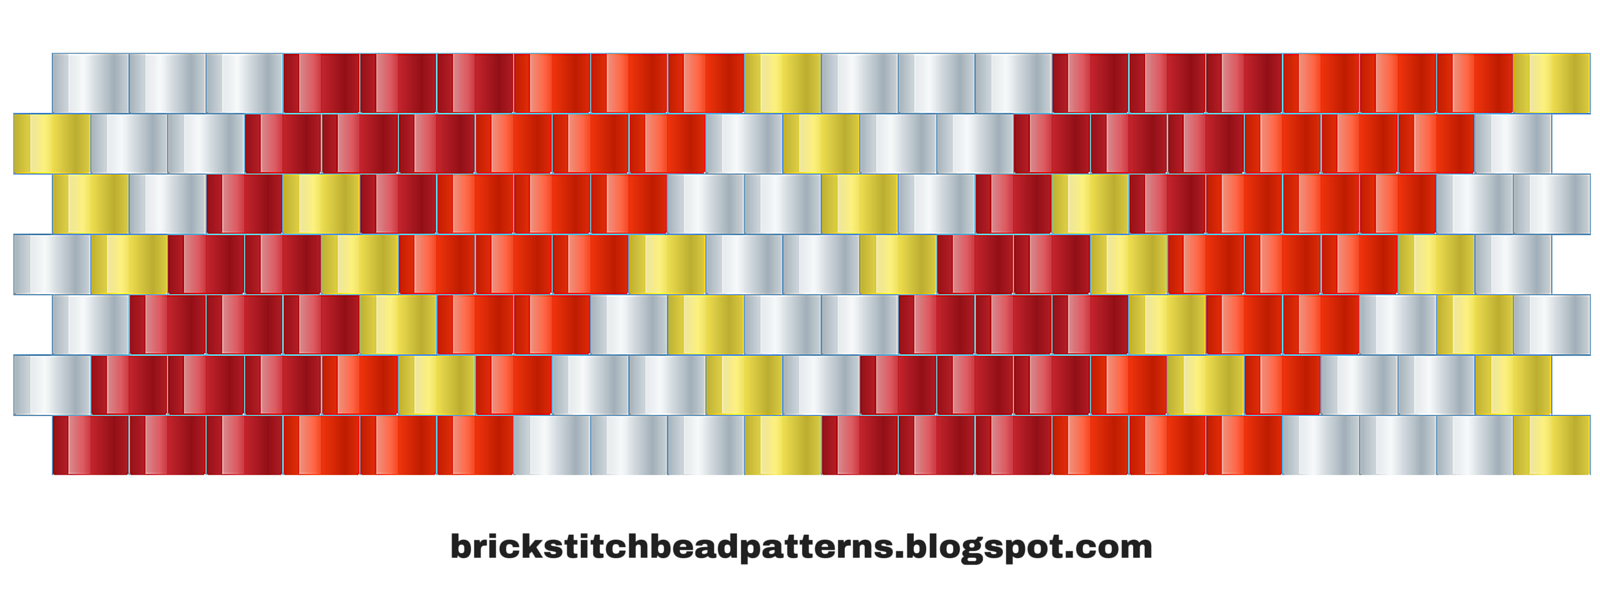 Brick Stitch Bead Patterns Journal: #10 Free Brick Stitch Pony Bead - Pony Bead Patterns Free Printable